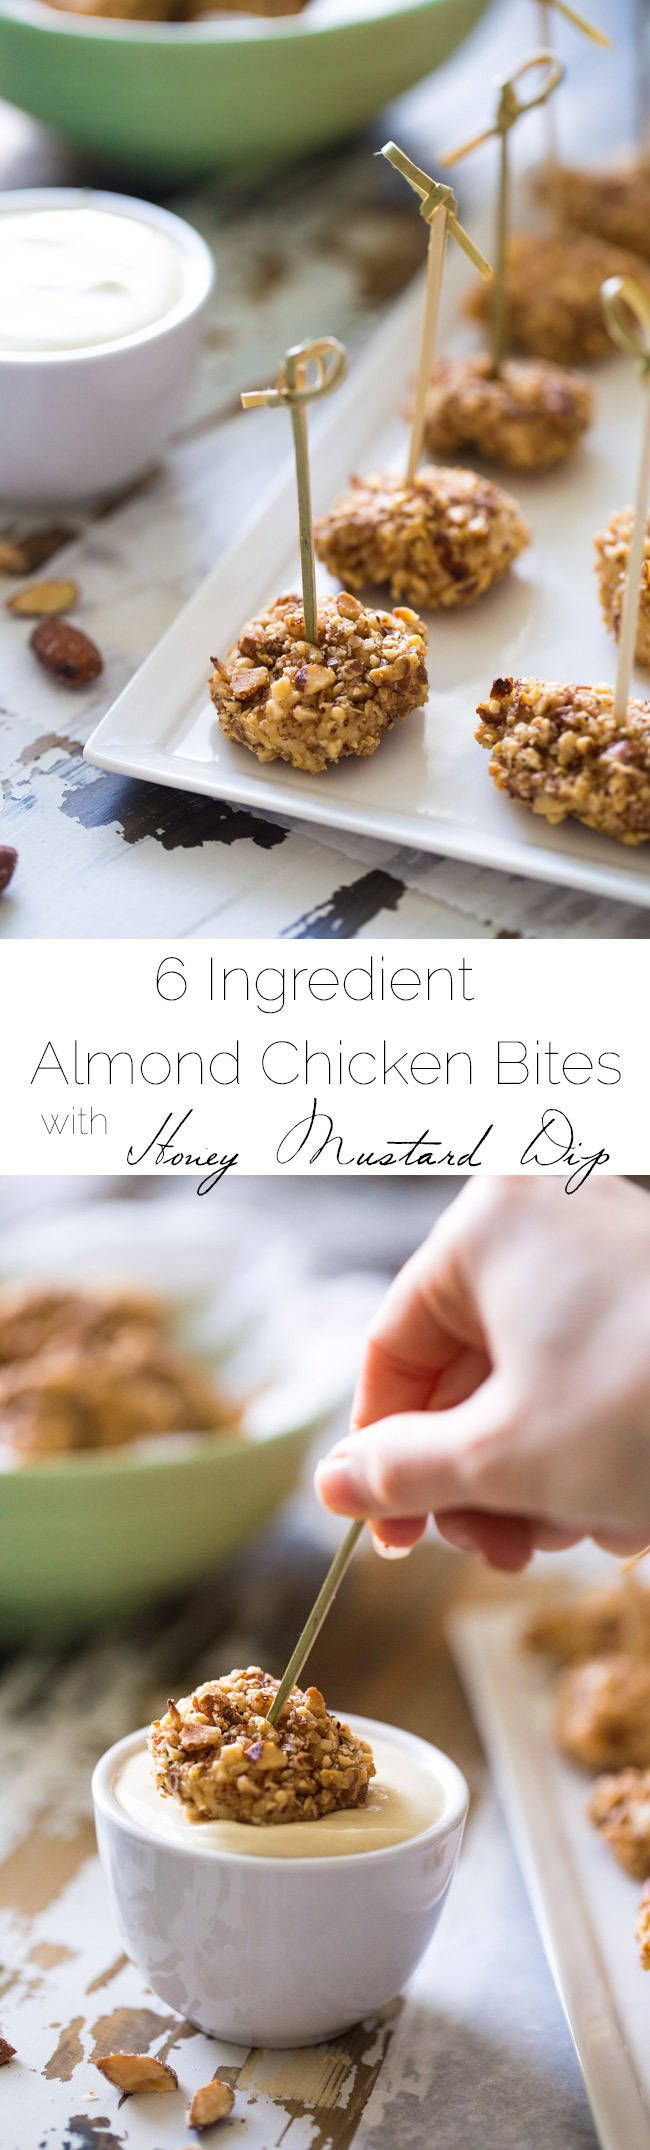 6 Ingredient Almond Chicken Bites with Honey Mustard Dip - SO easy, crunchy and healthy! Using Greek Yogurt in the dip makes this a healthy appetizer! | Foodfaithfitness.com | #recipe